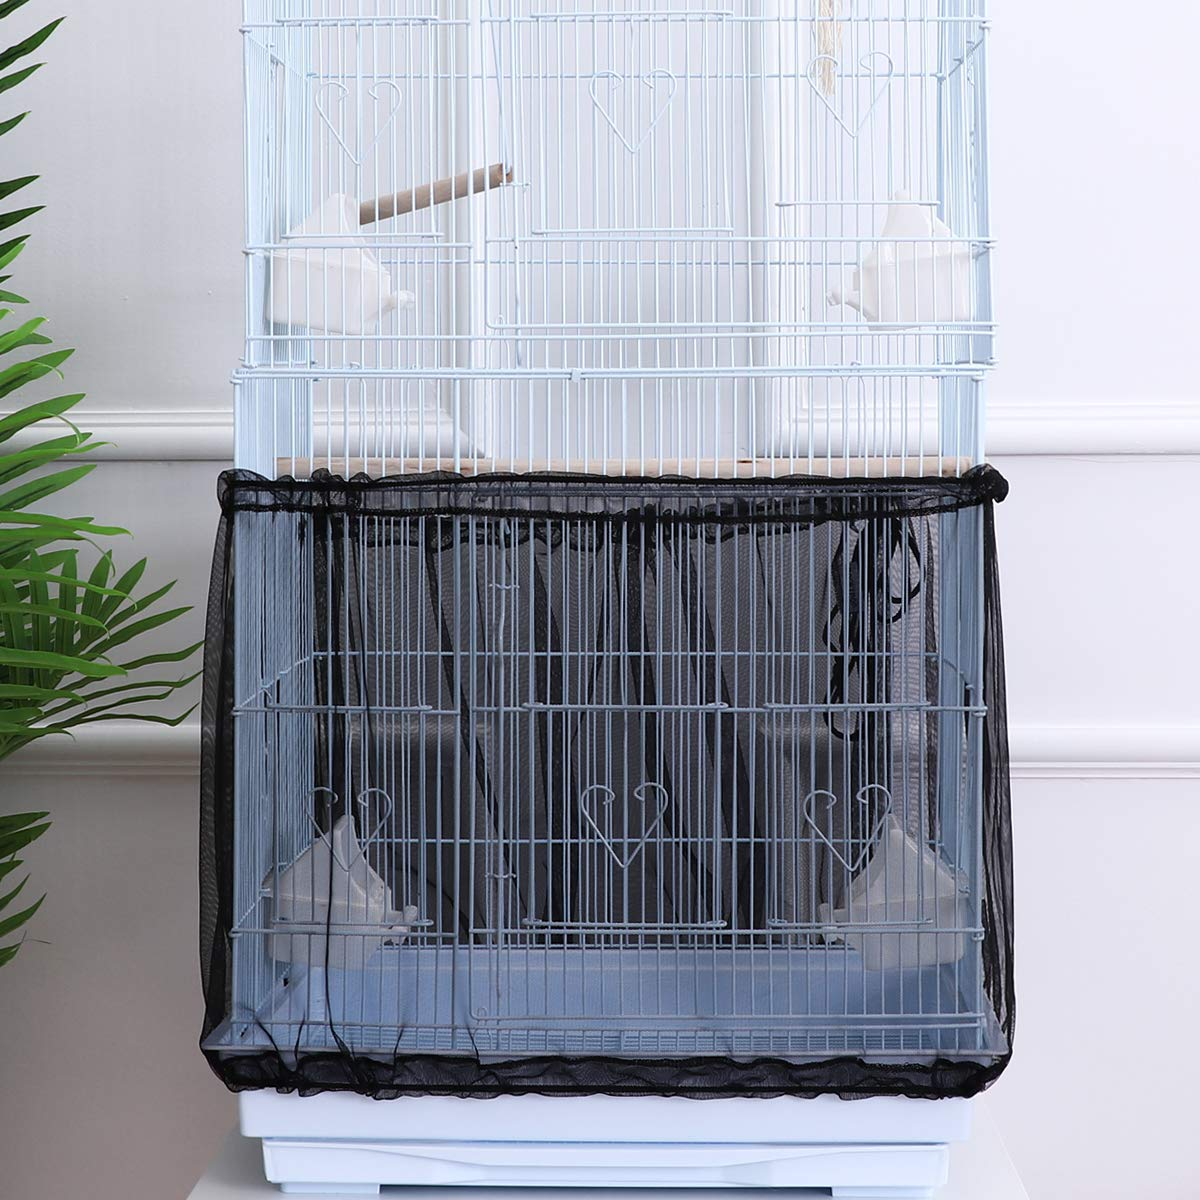 POPETPOP Universal Birdcage Cover, Bird Cage Skirt with Adjustable Drawstring Seed Catcher Guard Mesh Cover